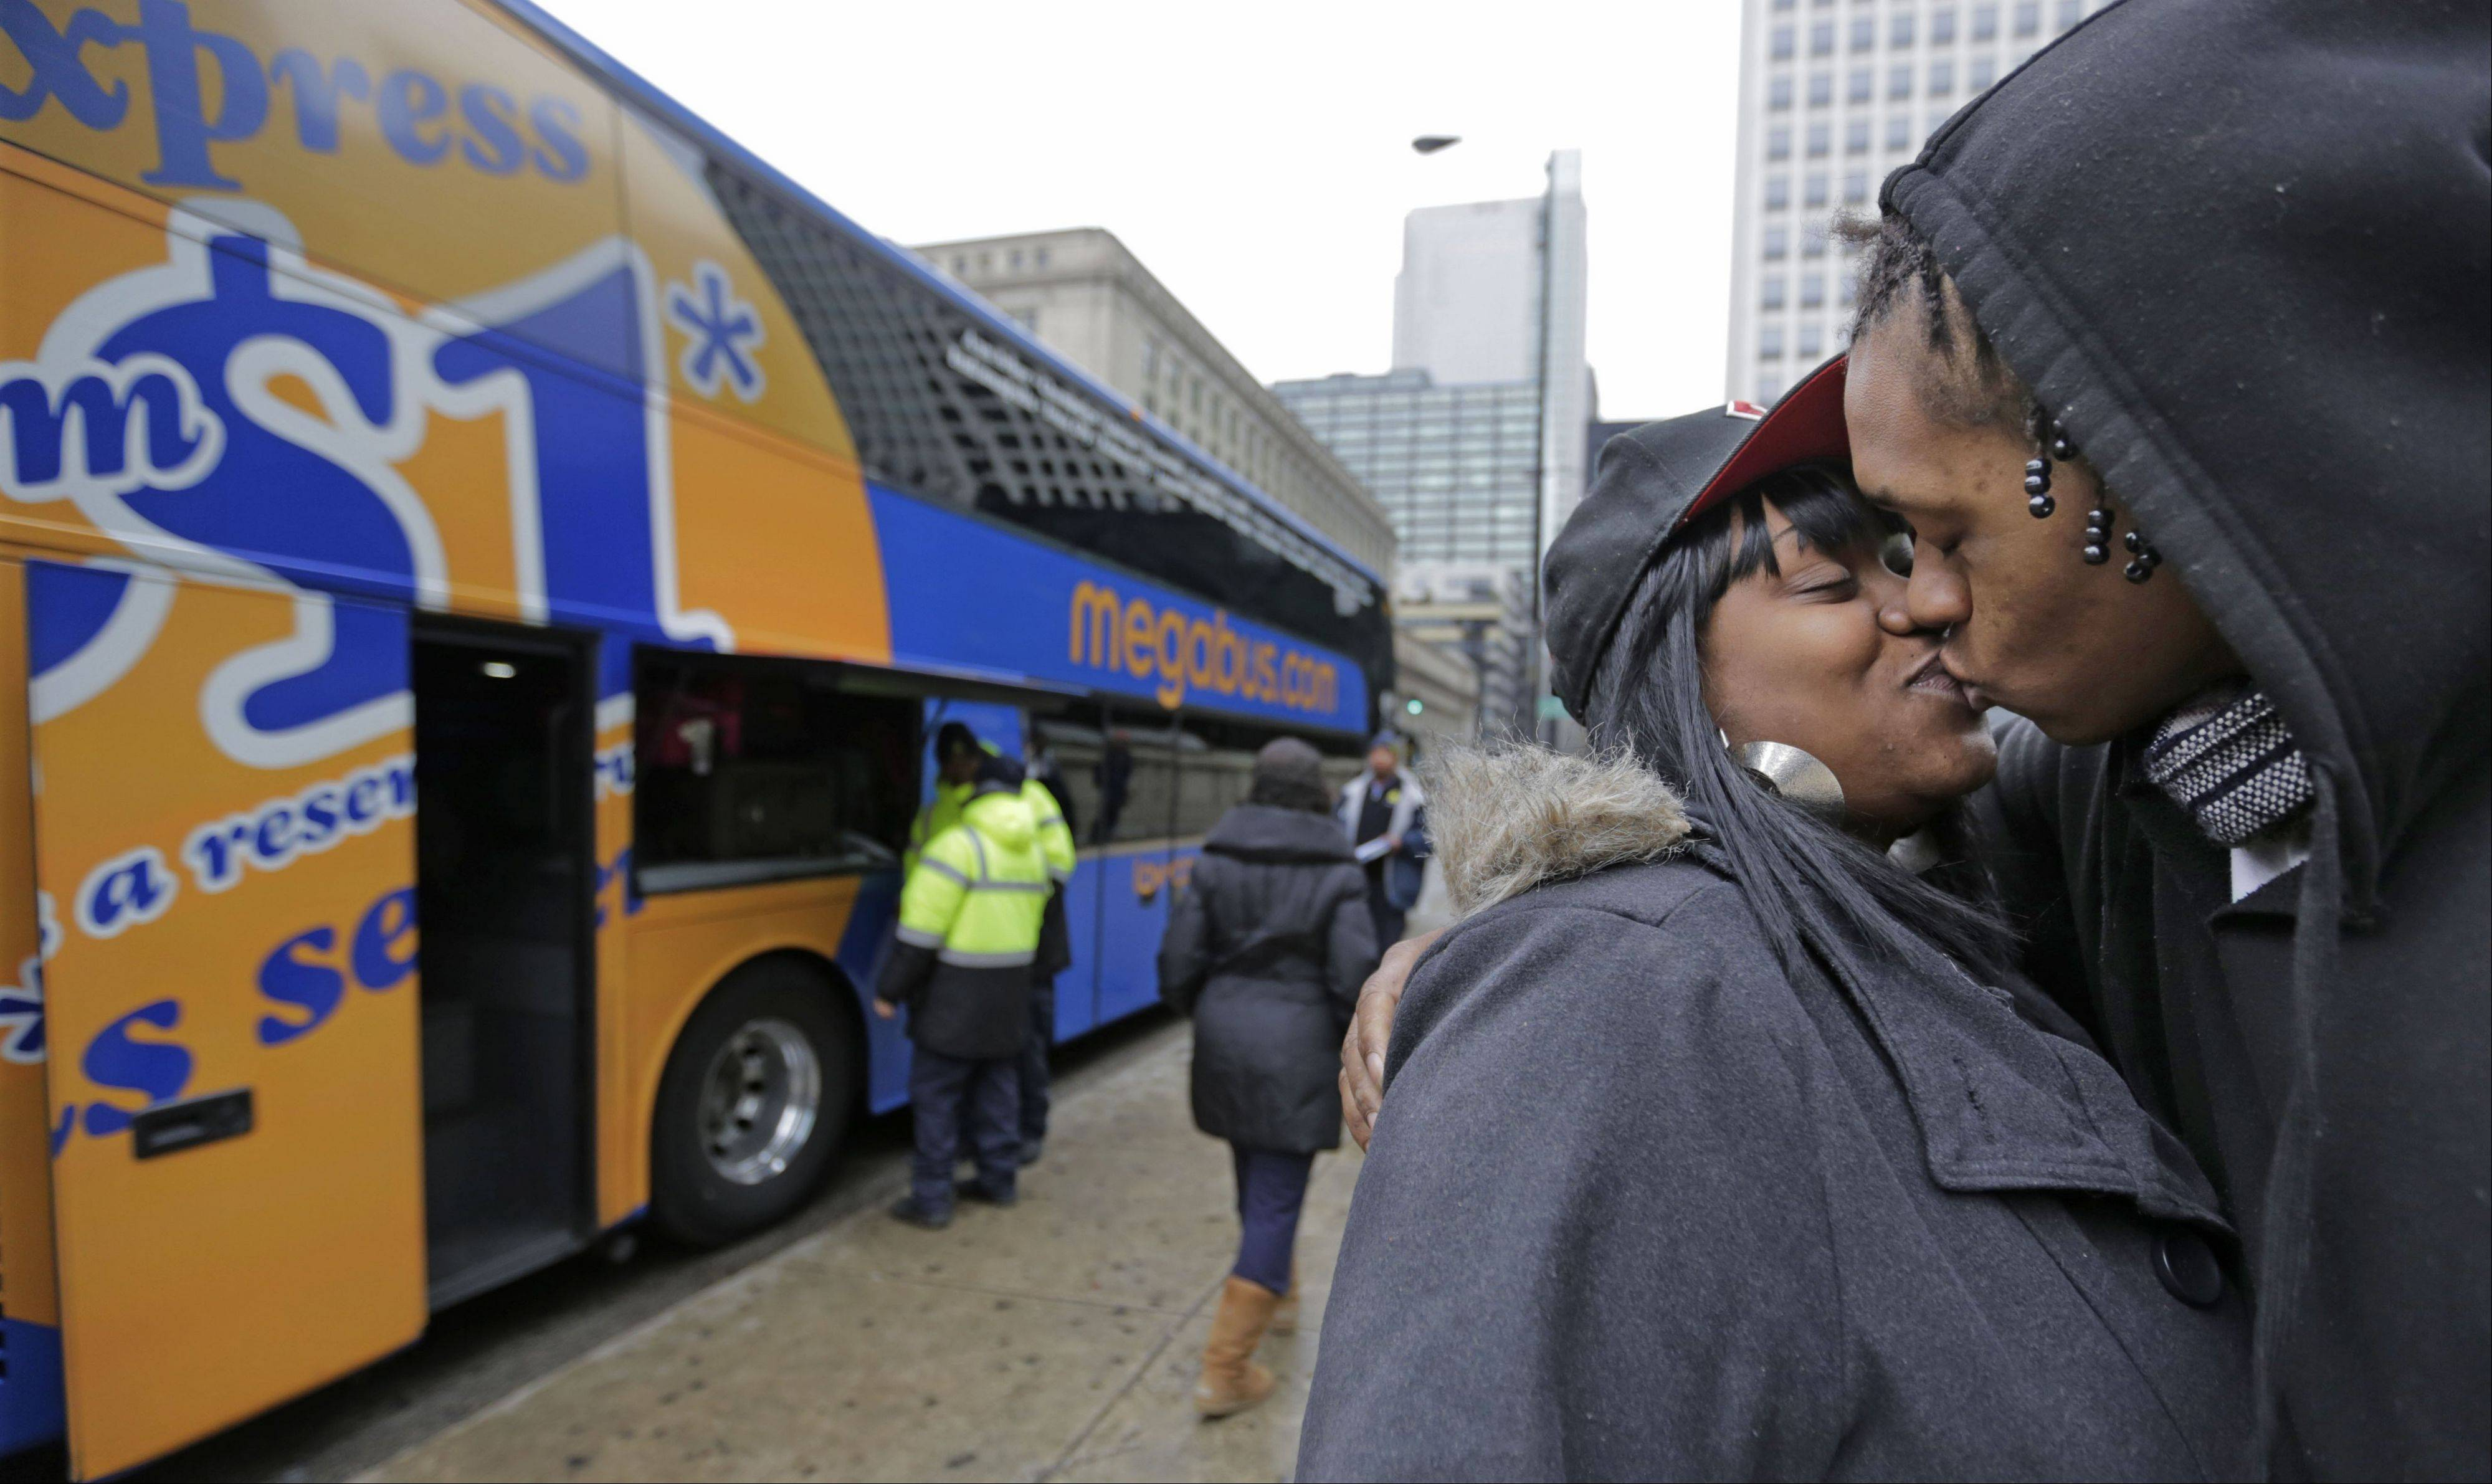 Shay Owens kisses her boyfriend Bryan Jordan before boarding a Megabus for a trip to Atlanta, Tuesday, Nov. 26, 2013, in Chicago. Millions of Americans are hurtling along the nation's jumble of transportation arteries for Thanksgiving, and more of them are discovering that a bus, of all things, is the cheapest, comfiest and coolest way to stay Zen during the nation's largest annual human migration.